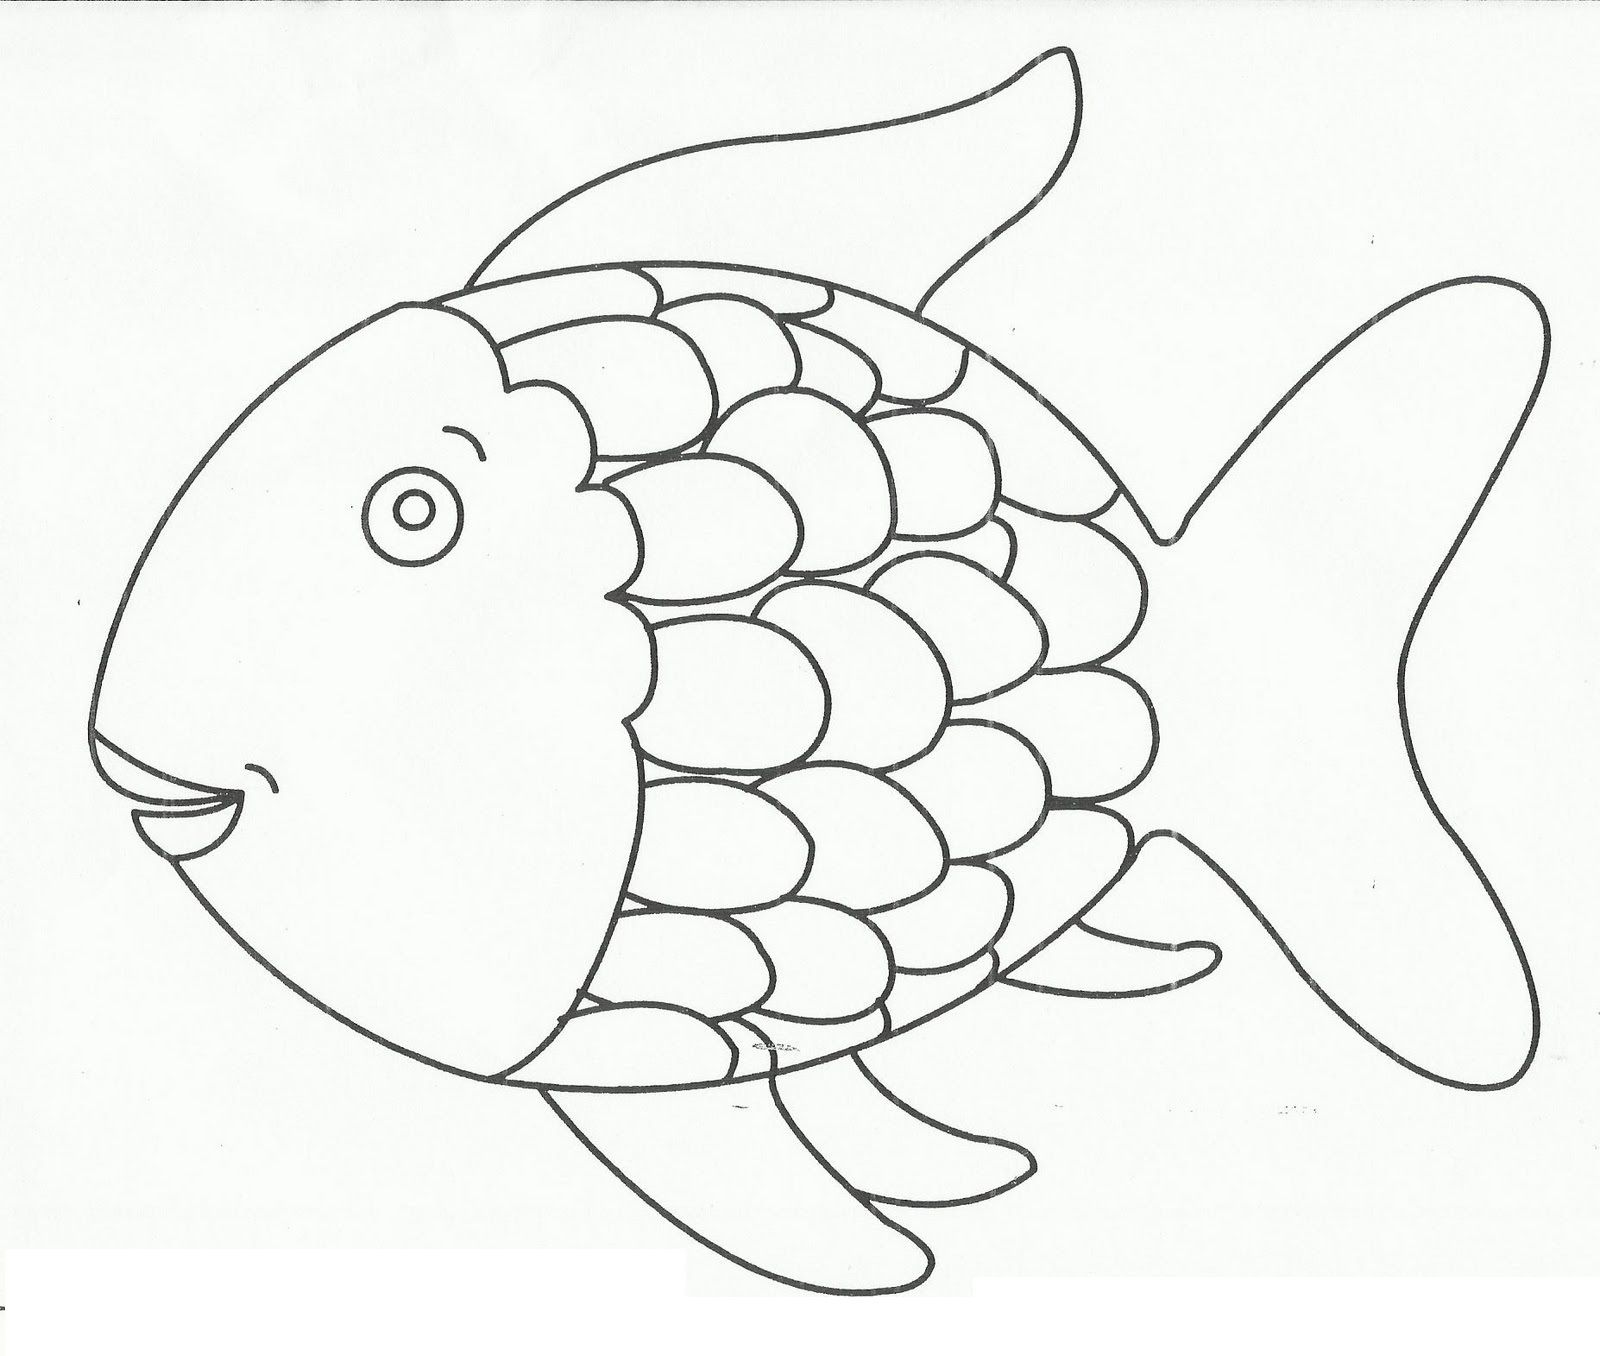 Fish With Scales Round Coloring Pages For Kids Cdc Printable Fish Coloring Pages For Kids Coloring Pages Fish Coloring Page Rainbow Fish Coloring Page